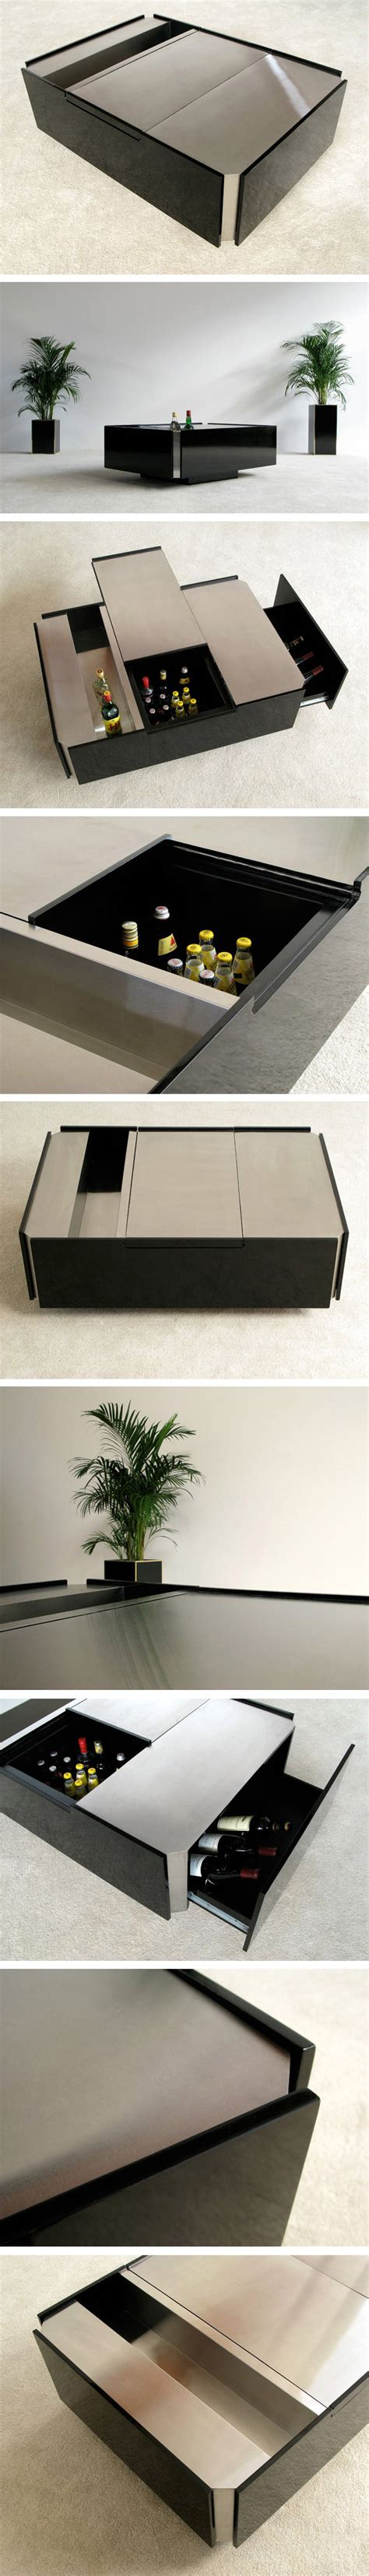 coffee table with fridge stainless steel coffee table with fridge circa 70